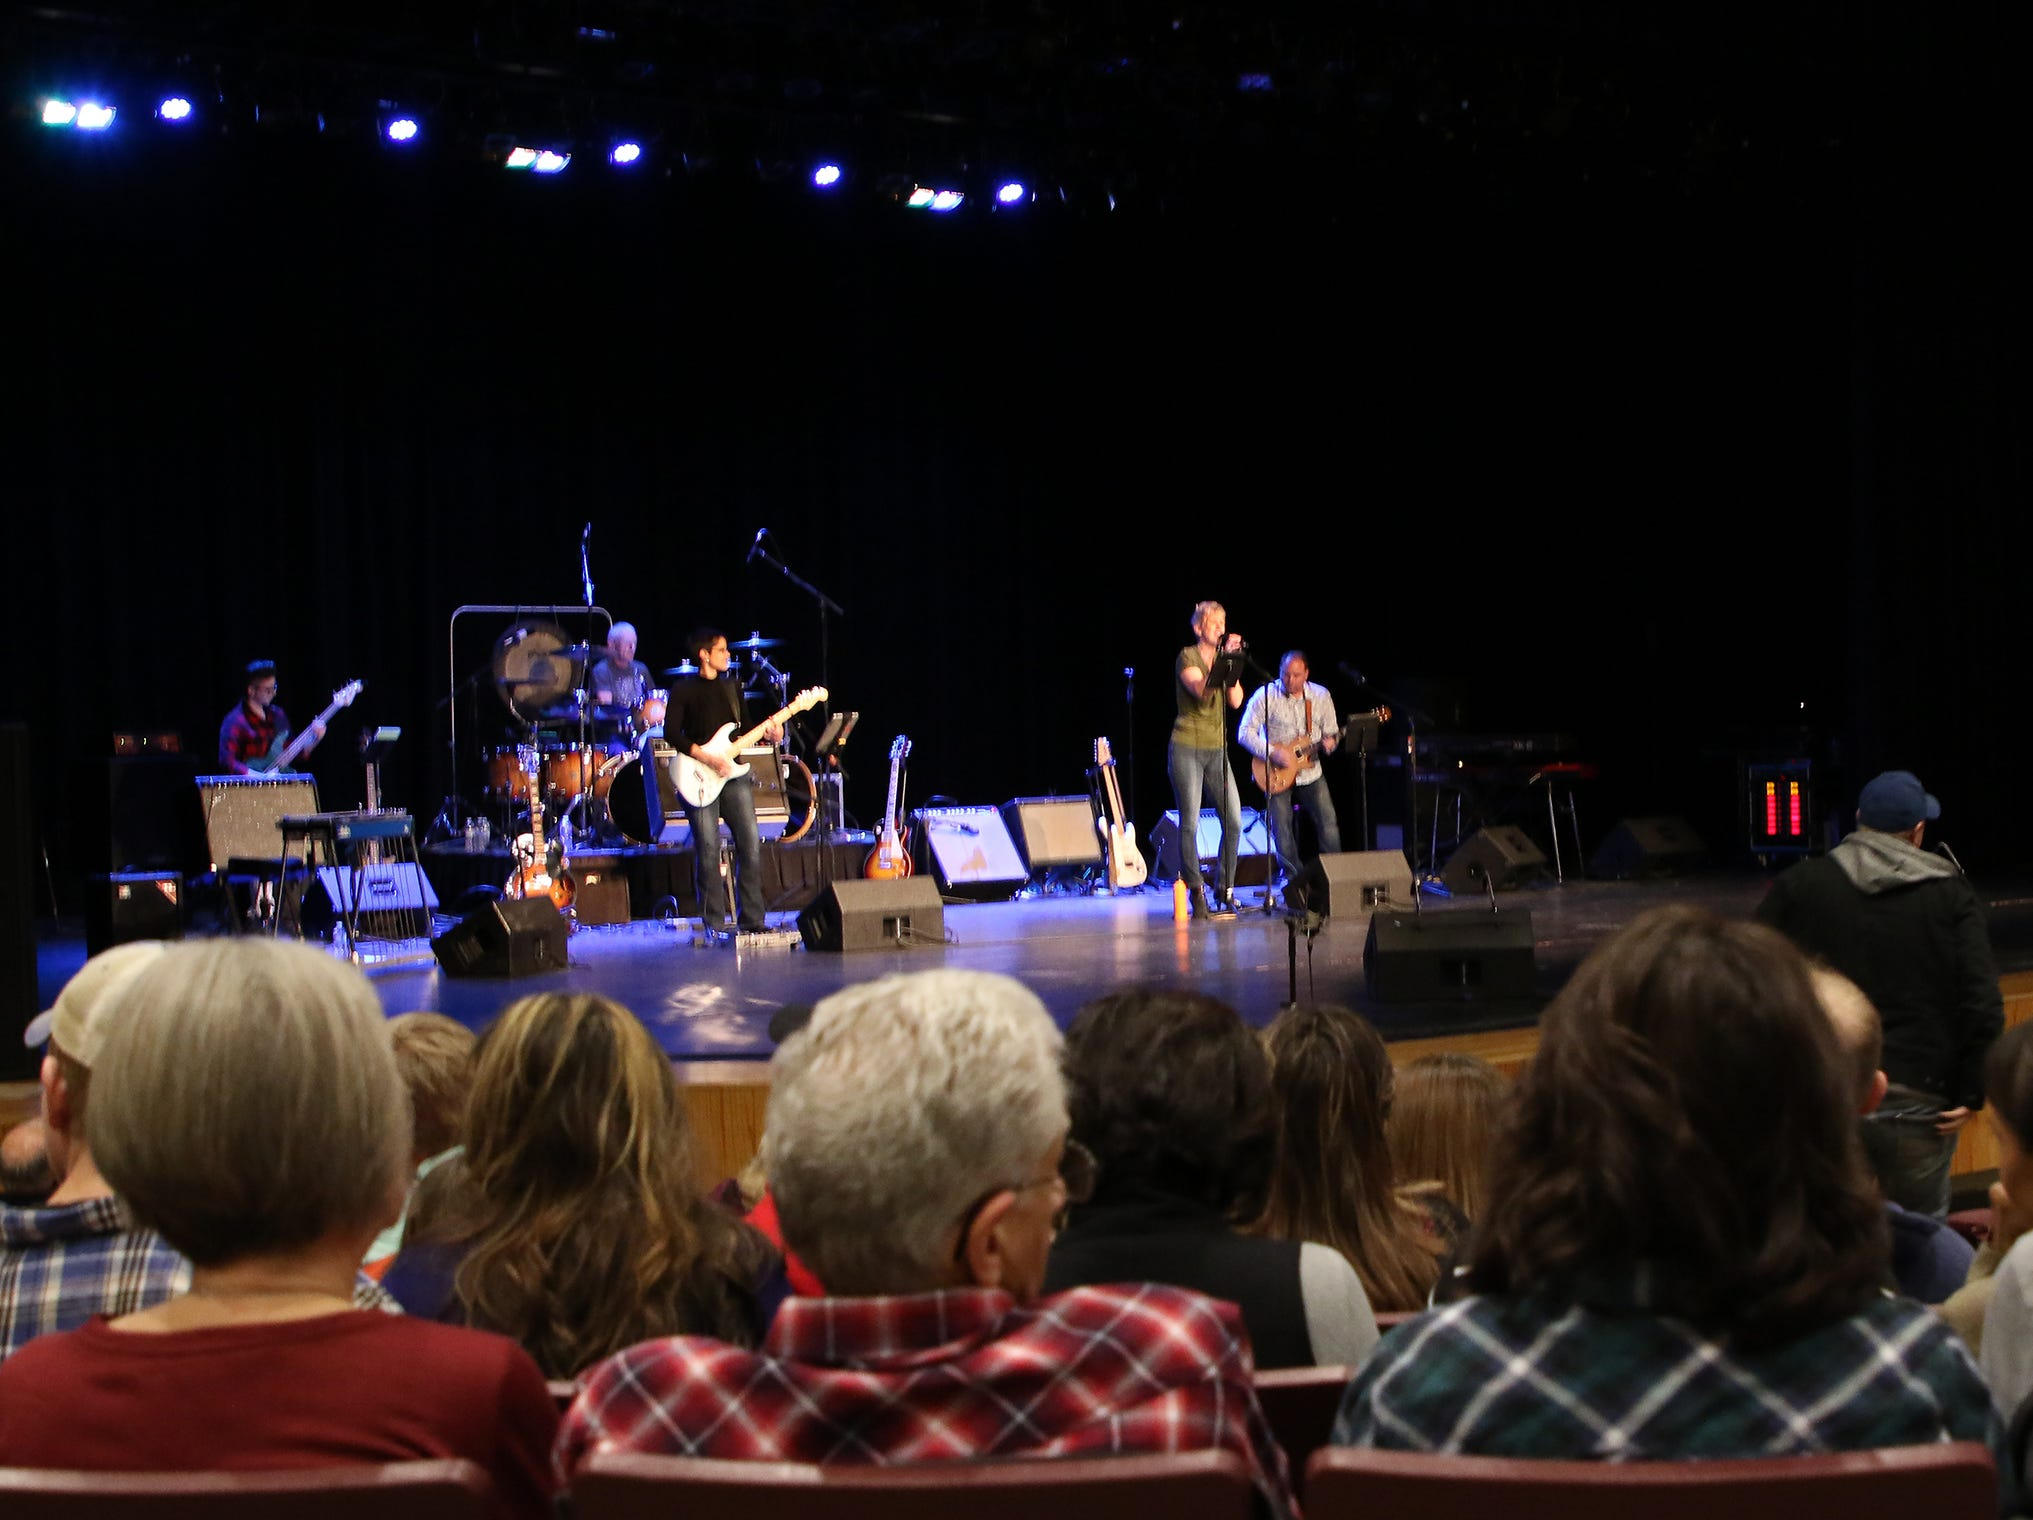 The band After Midnight opened the Chevel Shepherd concert Saturday in the Farmington Civic Center's auditorium.